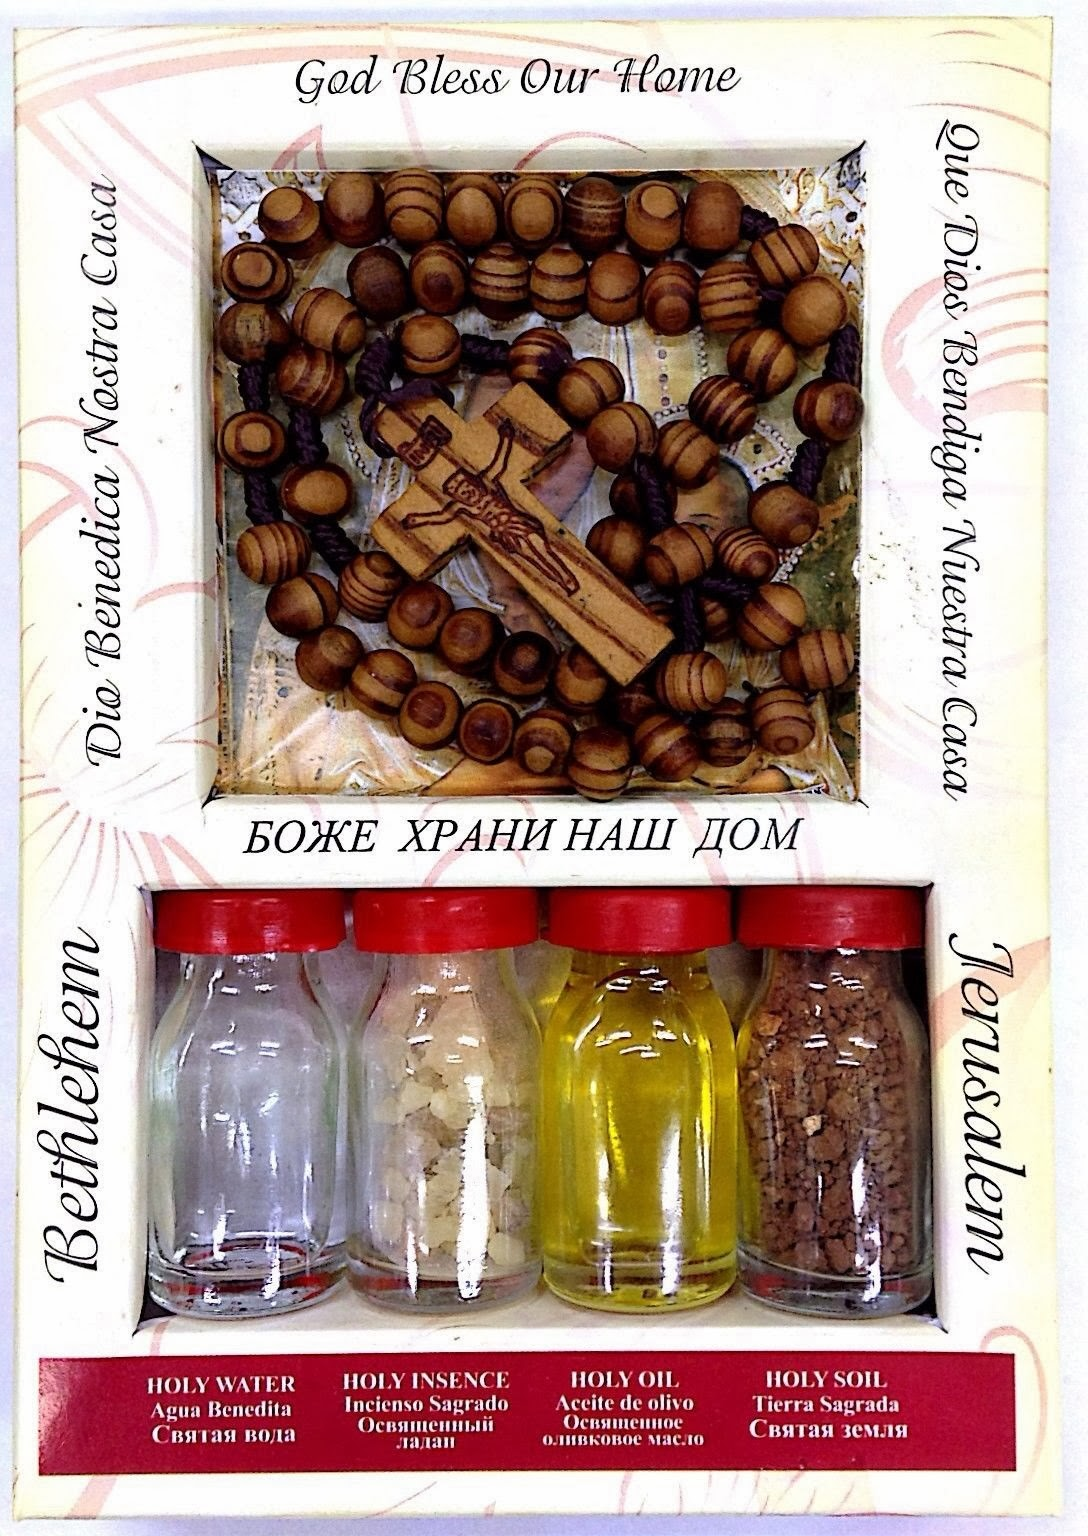 Fancy holy land pack : Olive wood Rosary , incense , oil , earth , holy water